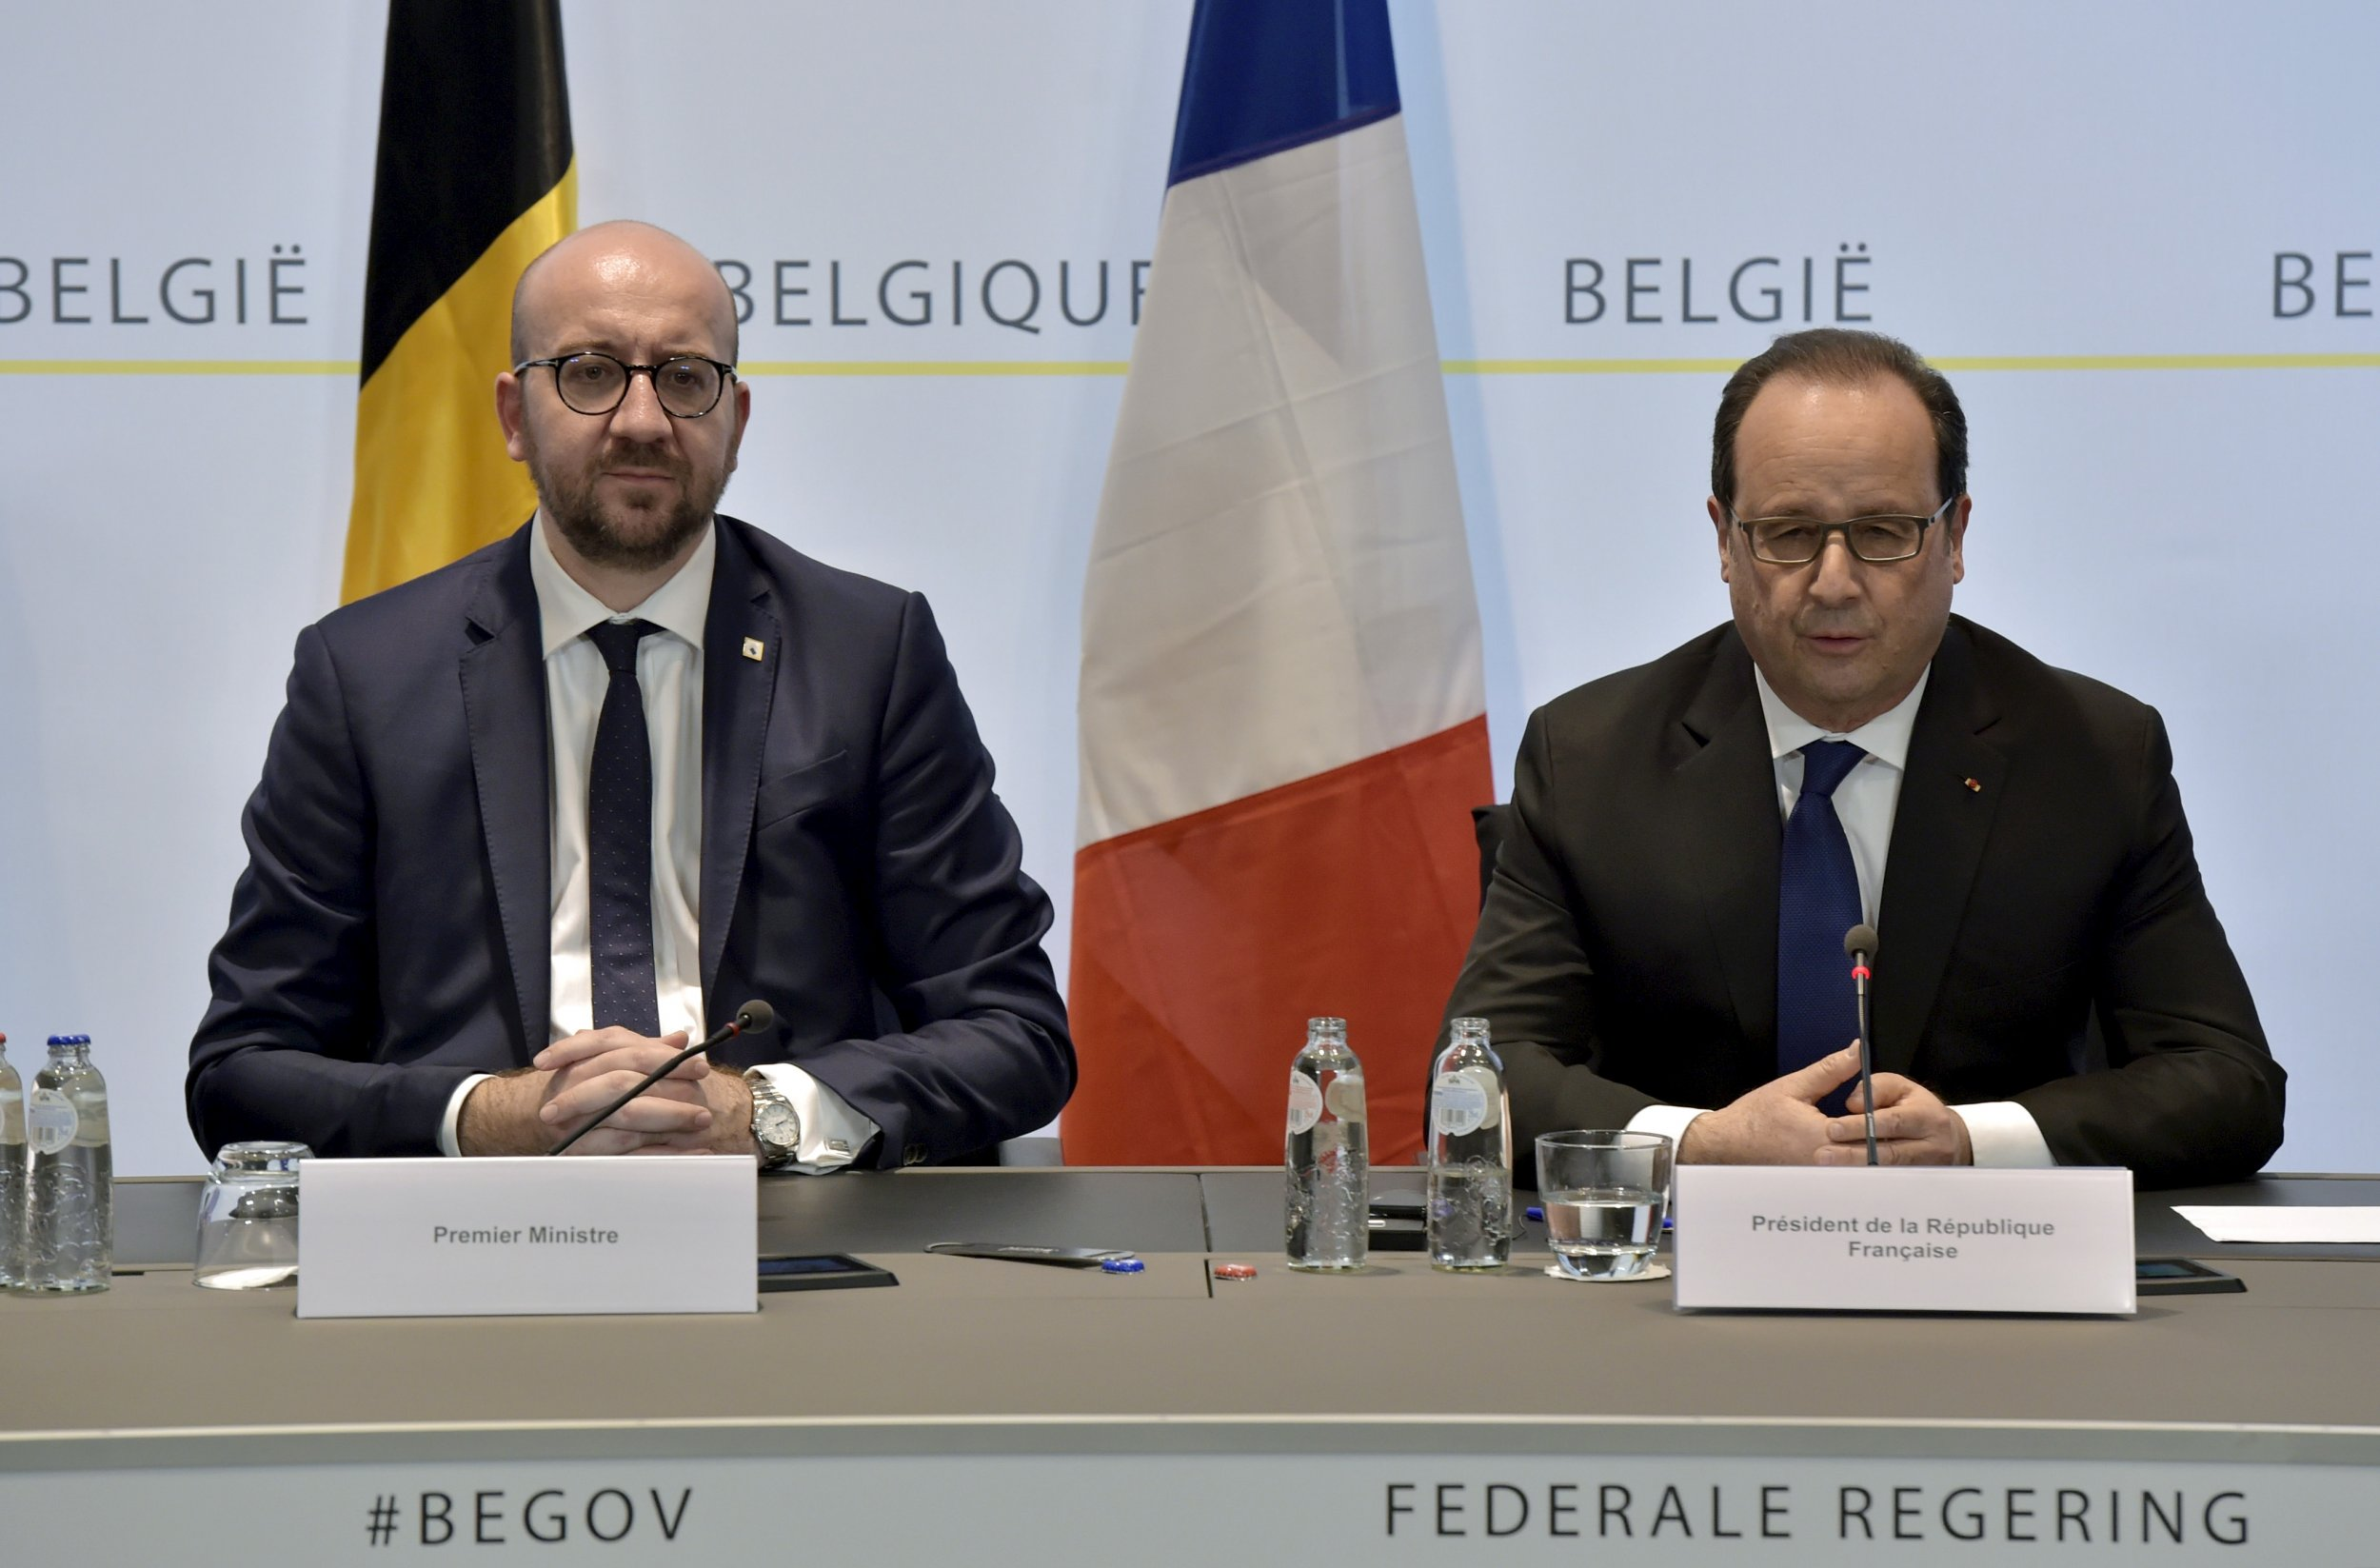 Charles Michel and Francois Hollande